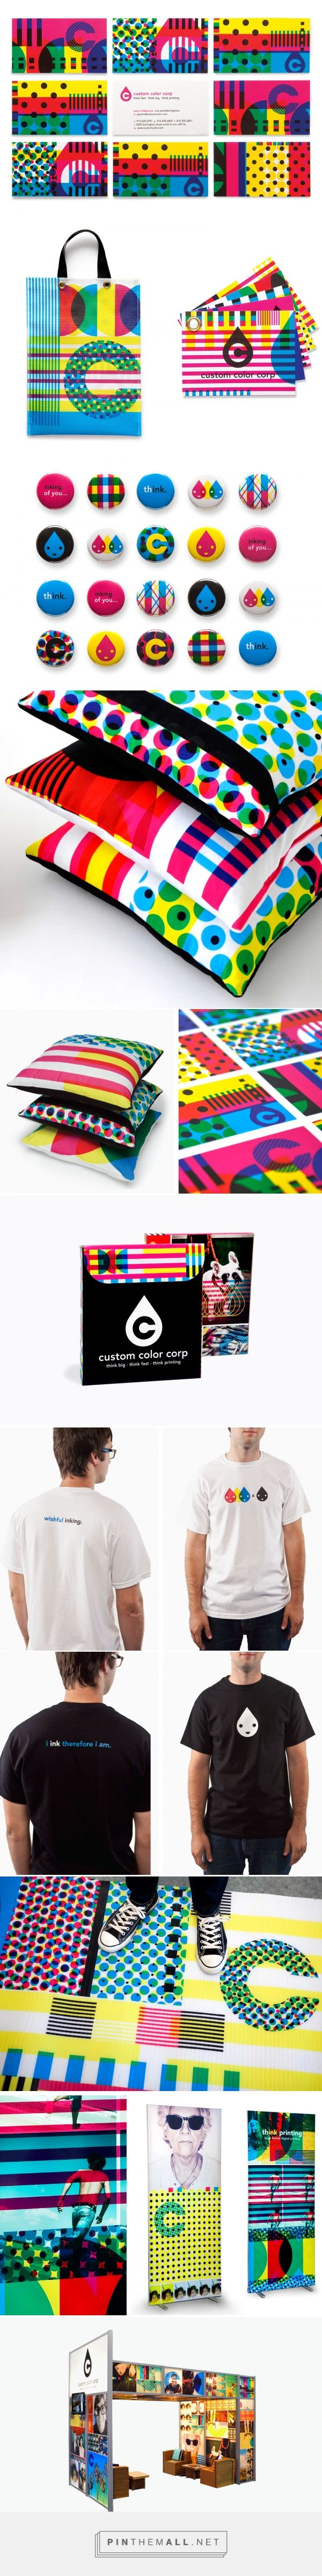 Custom Color Corp. Branding by Design Ranch | Fivestar Branding – Design and Branding Agency & Inspiration Gallery